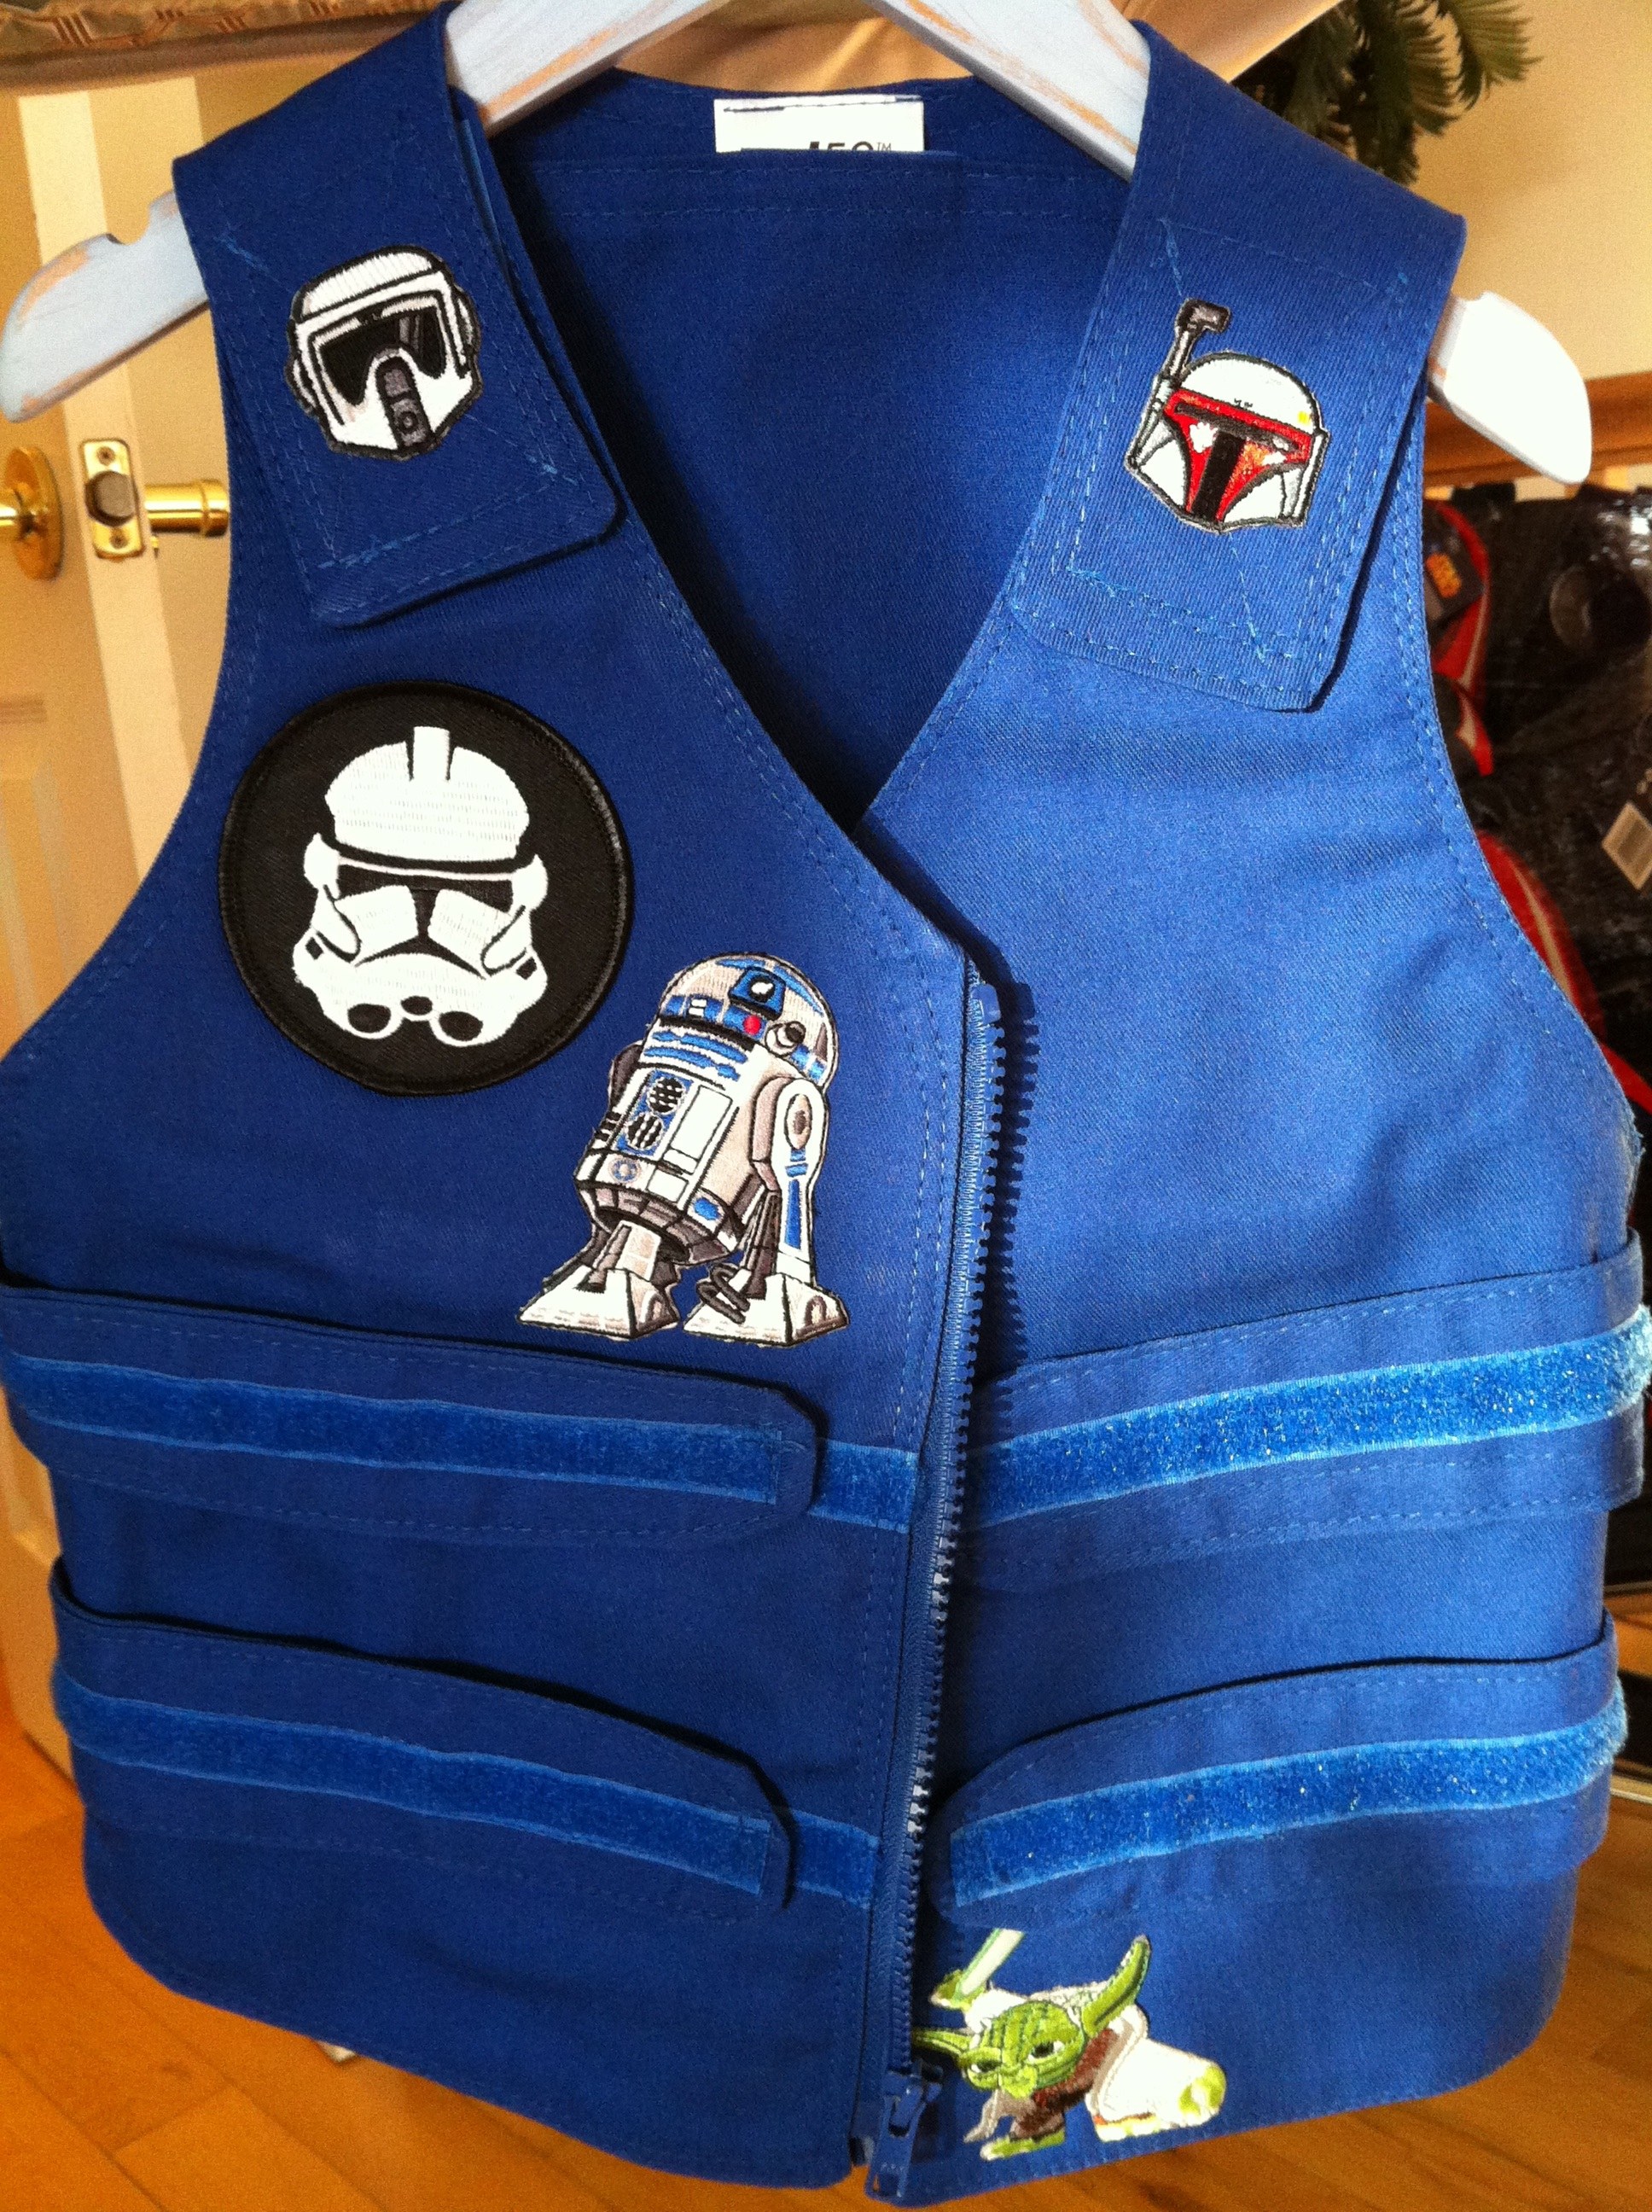 Blue Cool Kids toddlers cooling vest with star wars patches sewn on